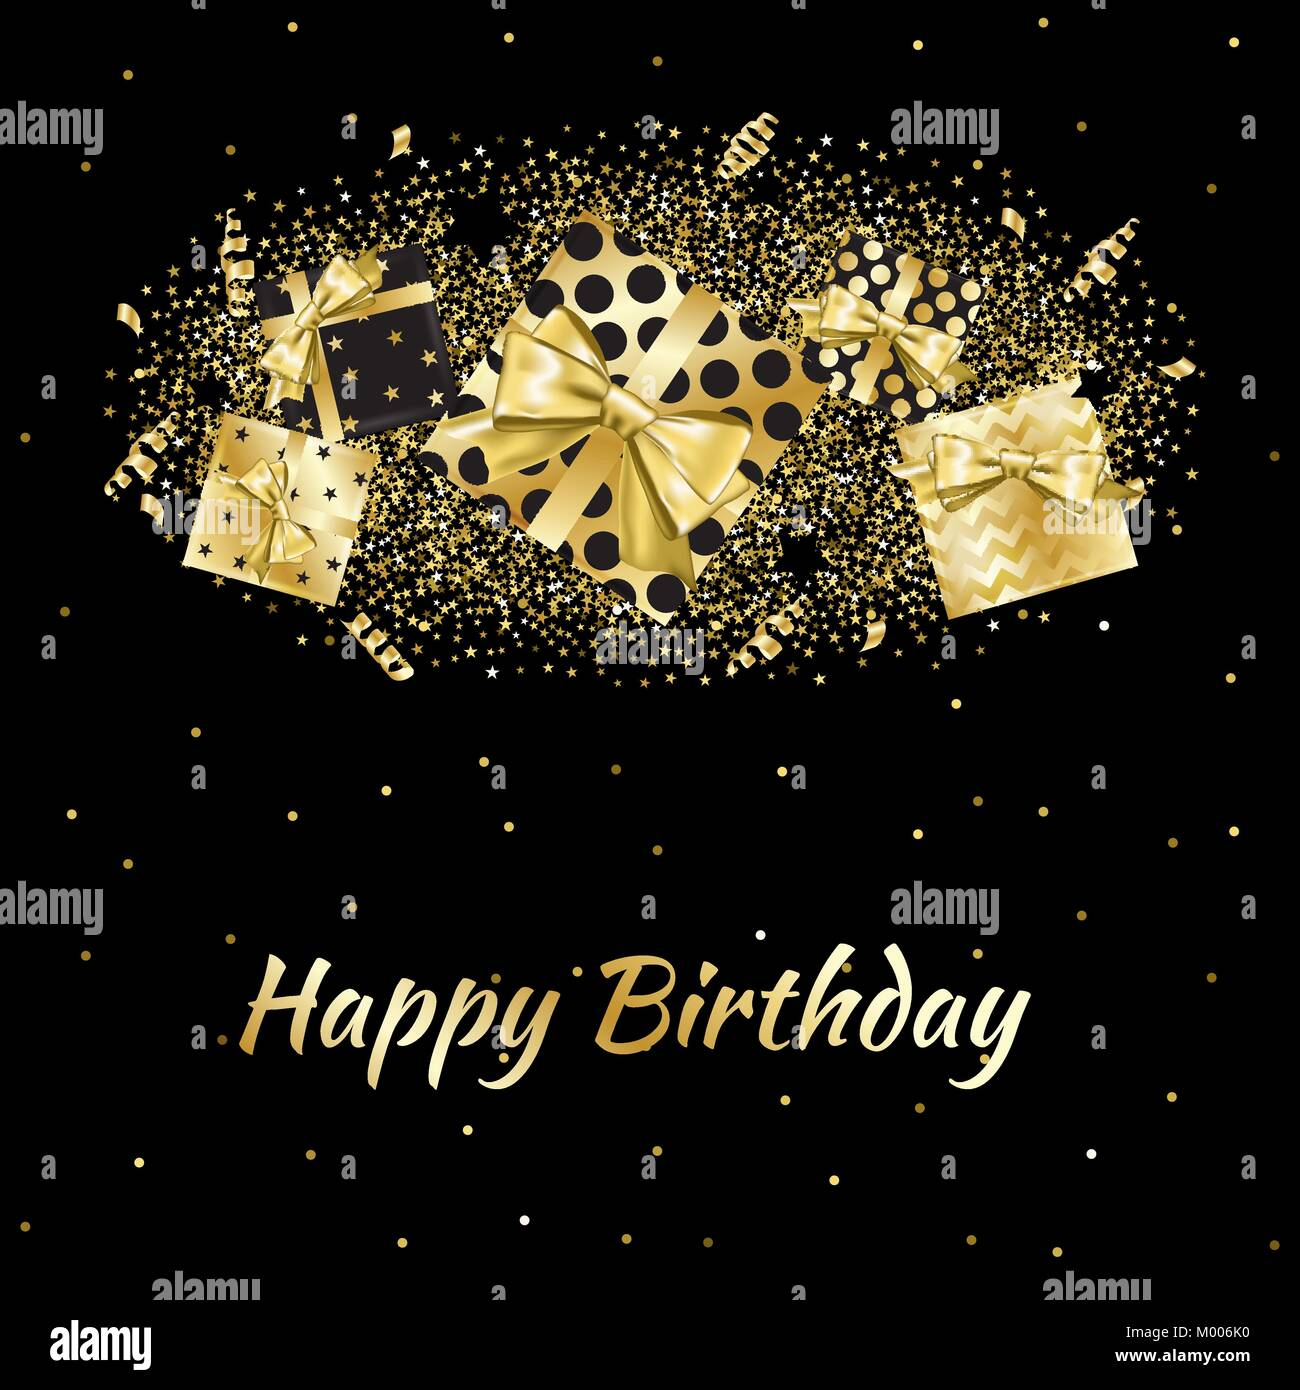 """Image result for happy birthday shining images"""""""